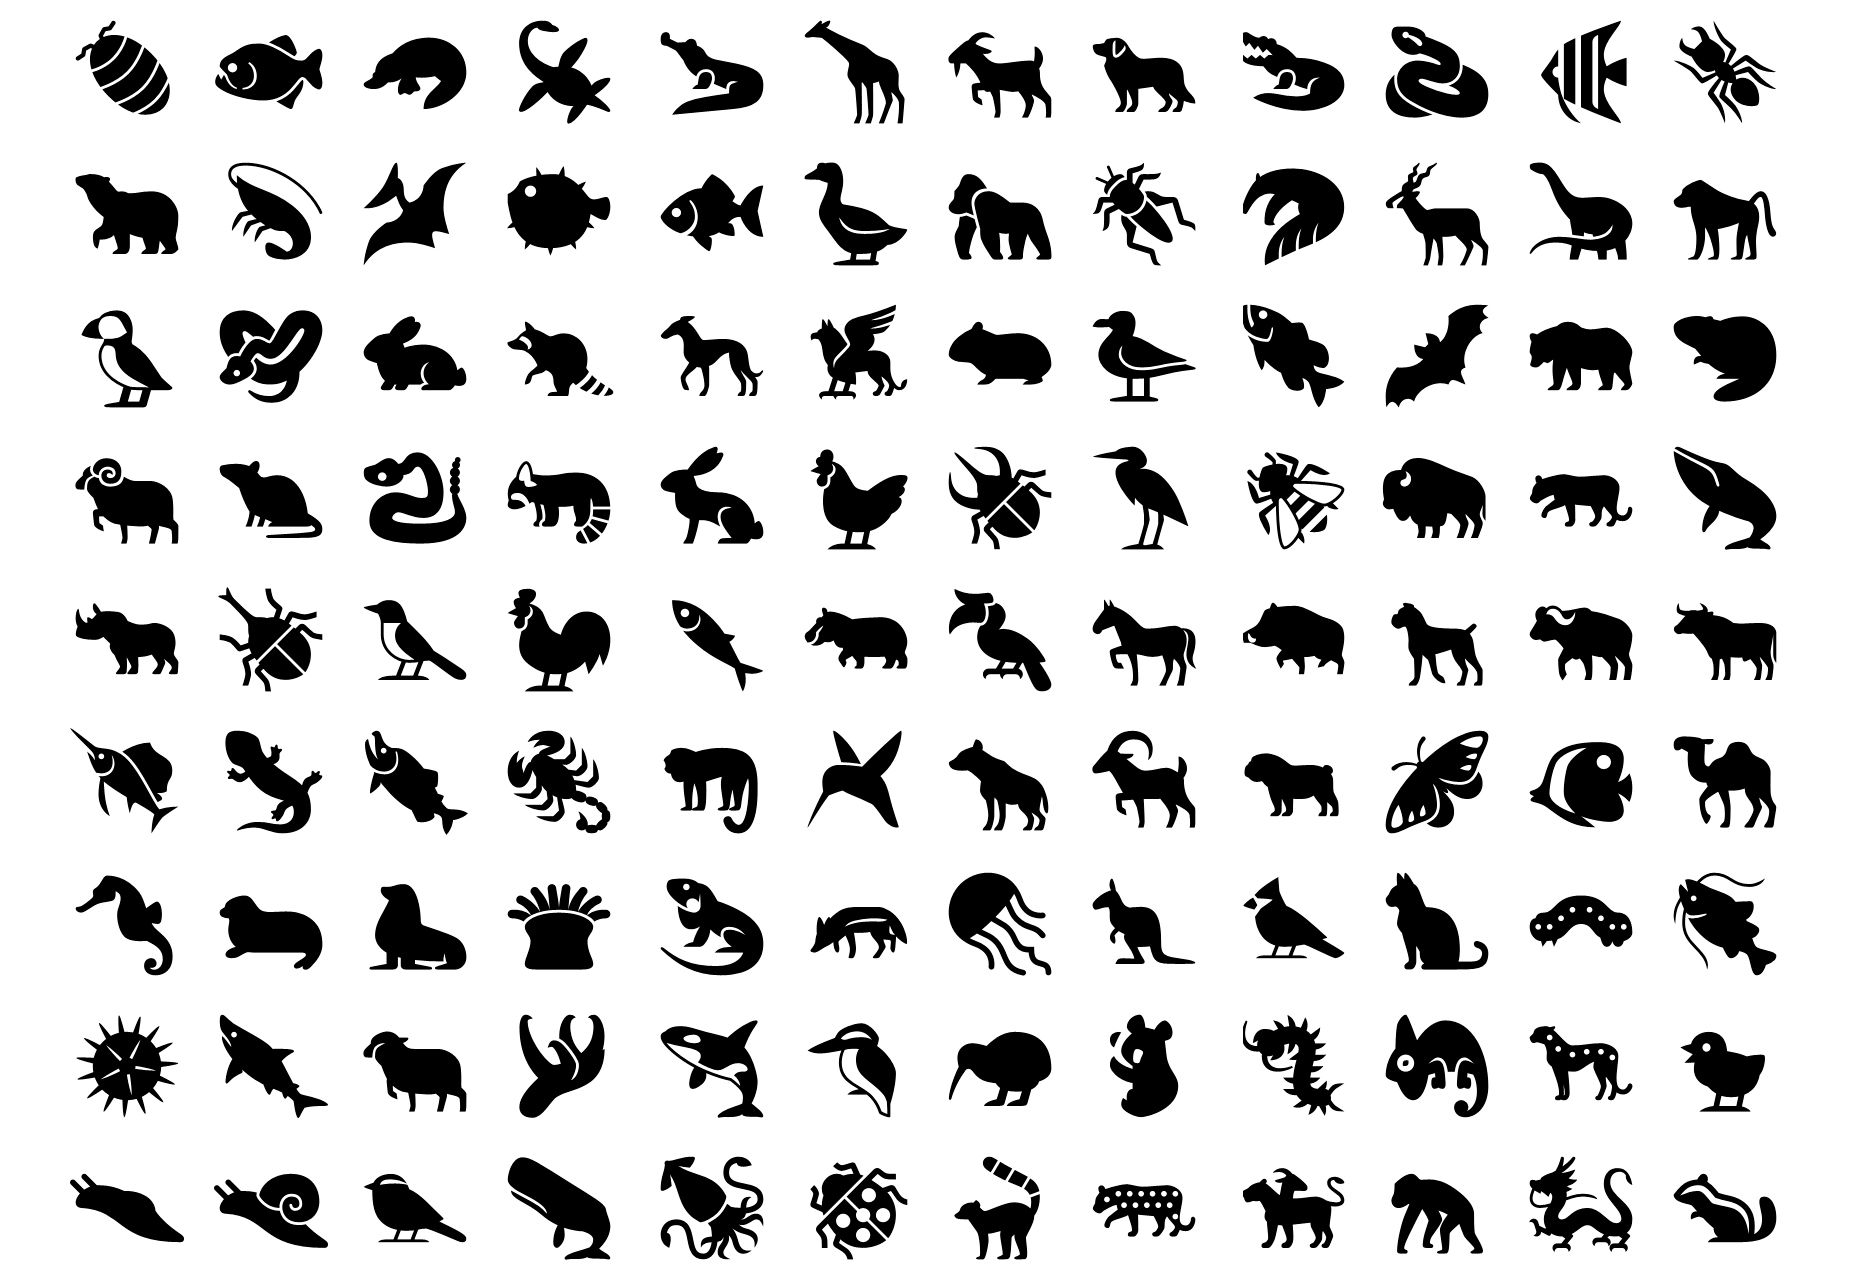 Conjunto de iconos de vectores de animales de iPhone